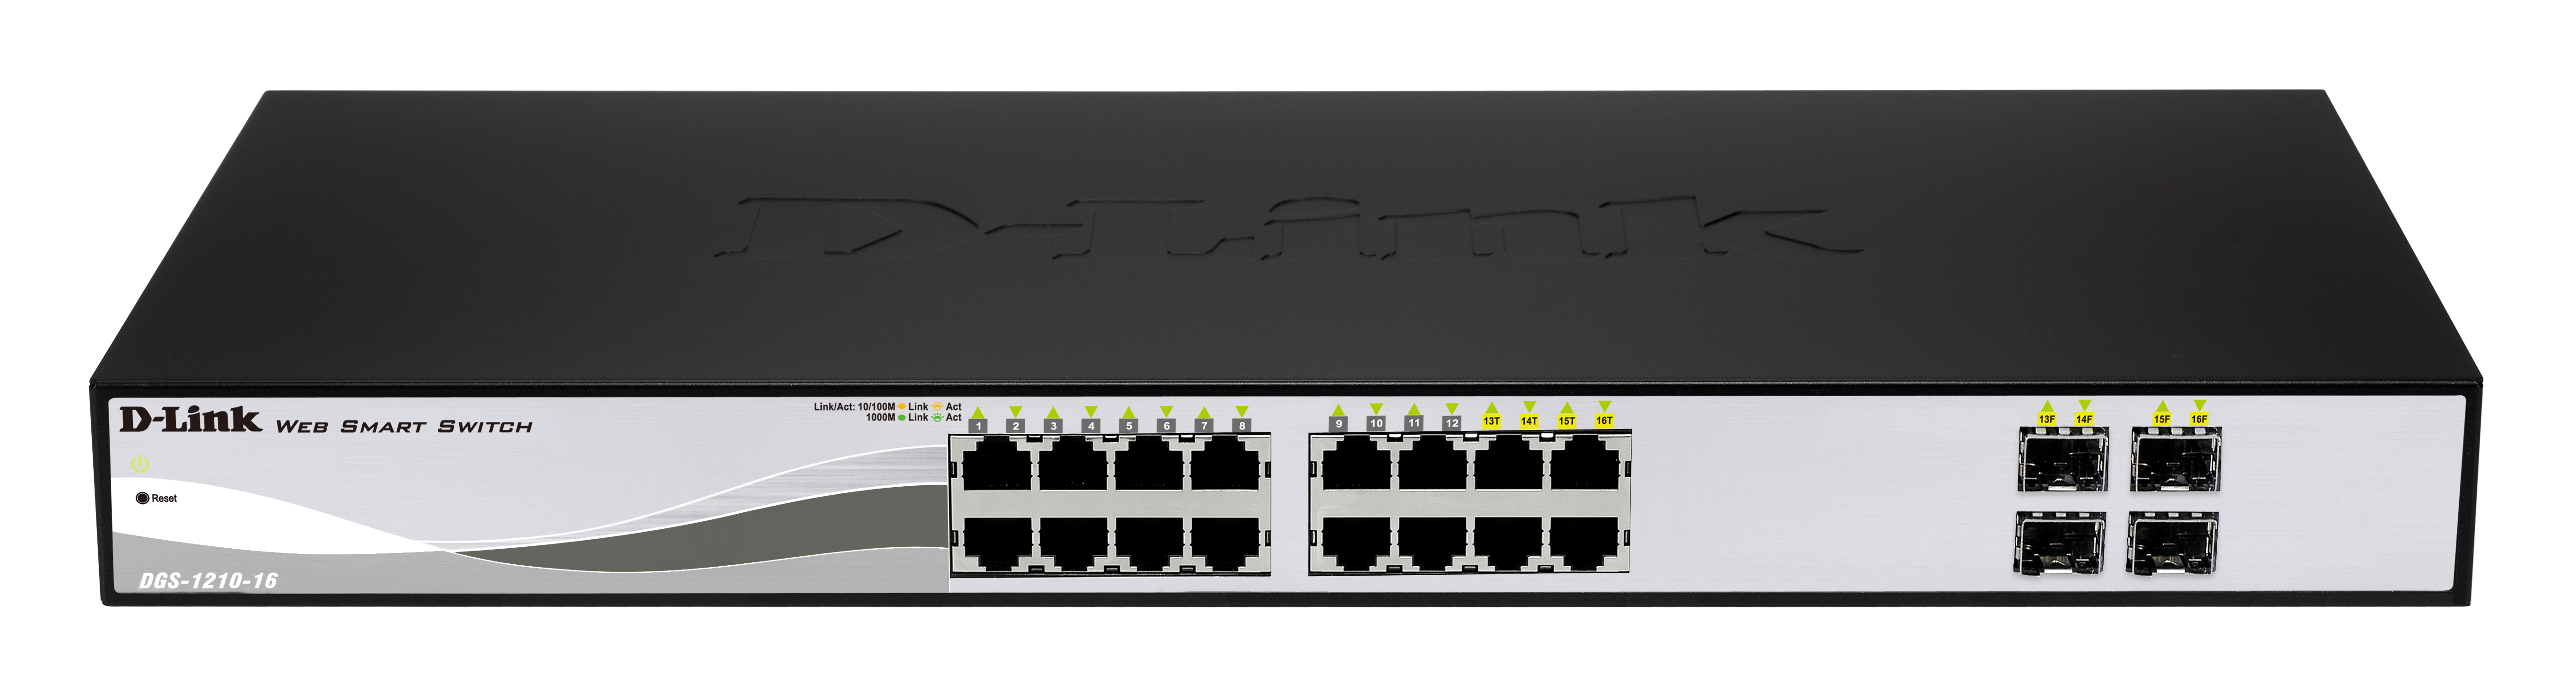 16-port GB Smart Switch including 4 X SFP